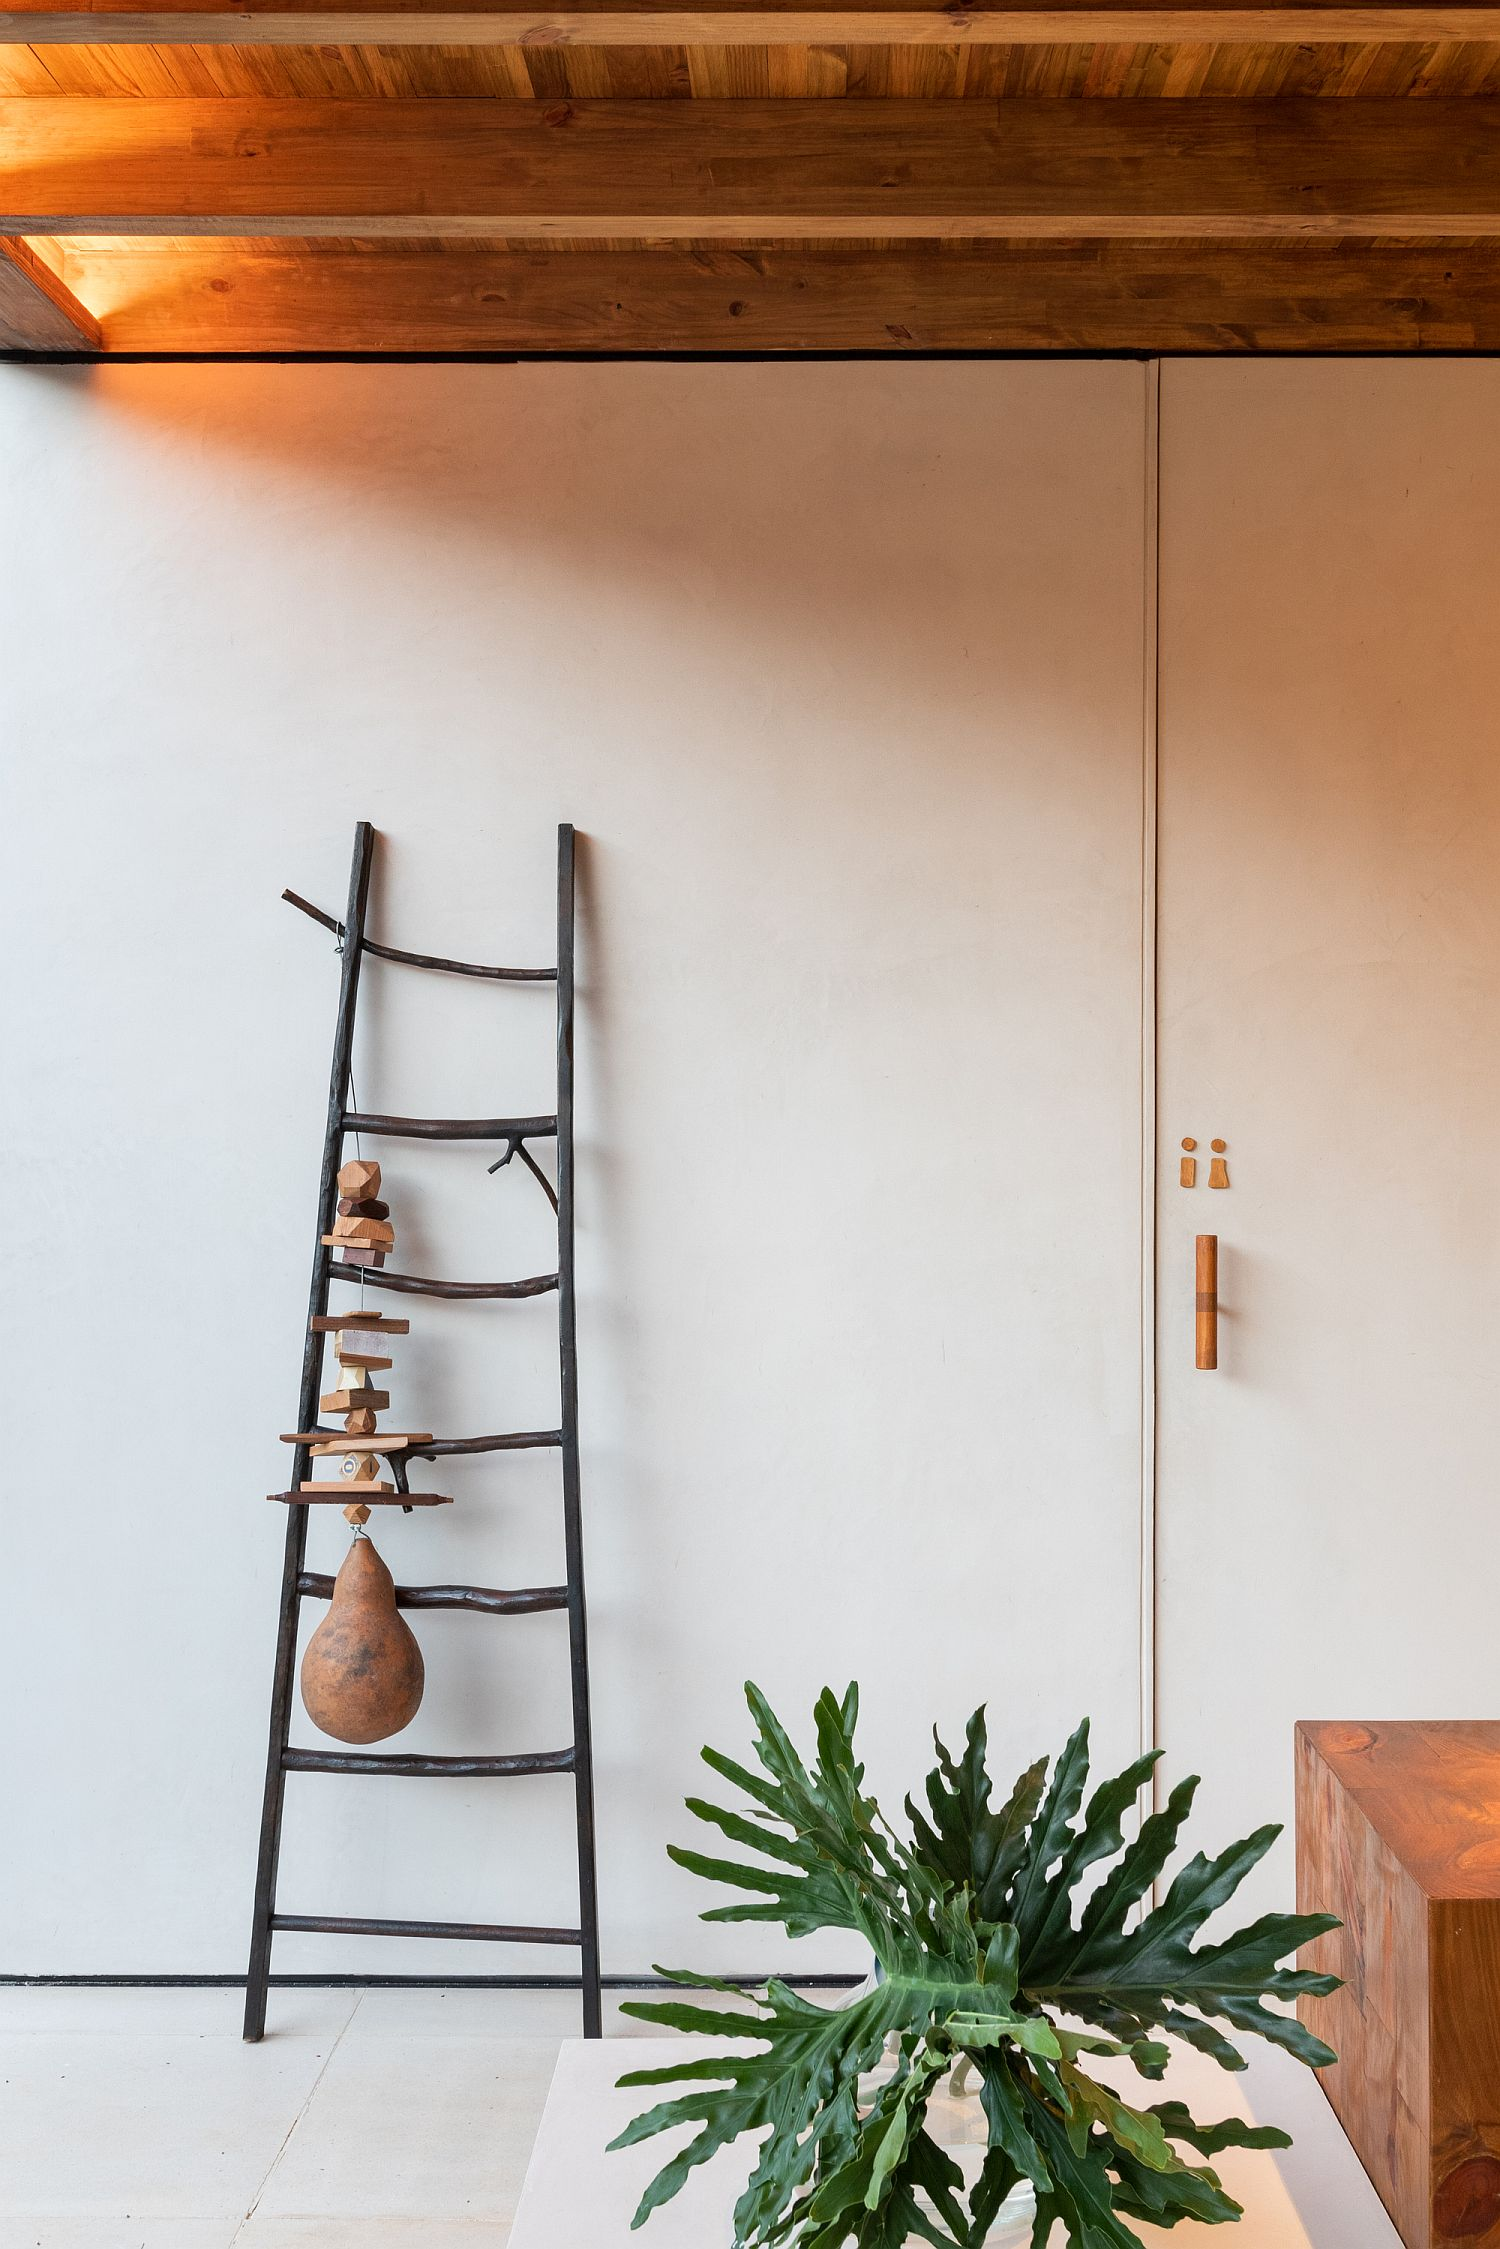 Using the restored ladder as a decorative piece with native touches